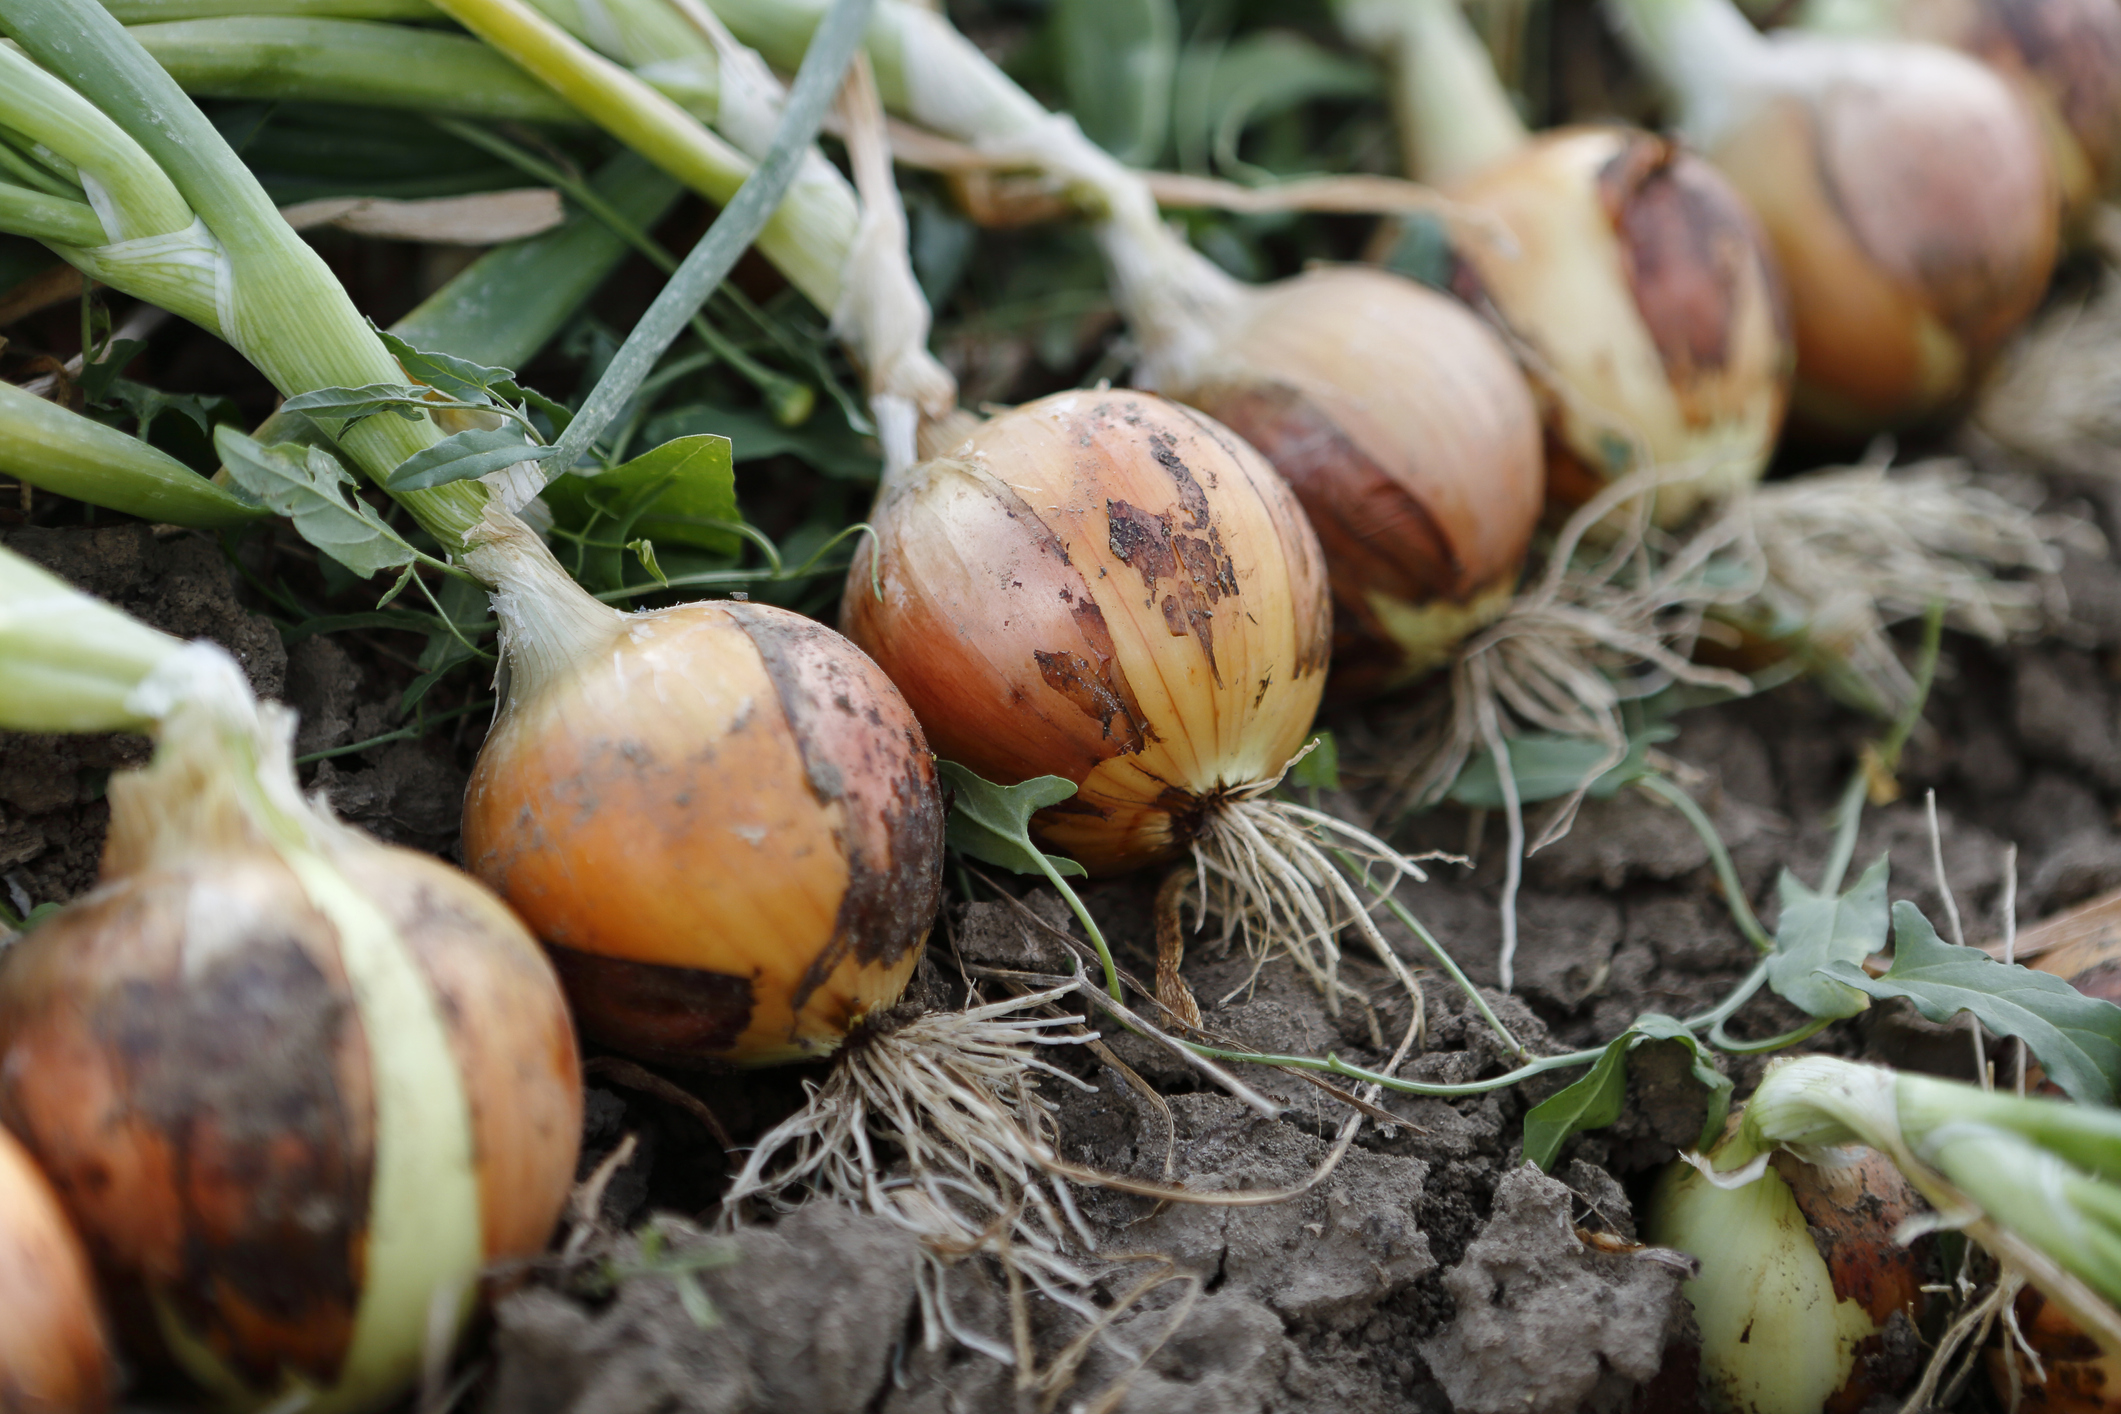 freshpoint produce onion harvest mirepoix vegetables